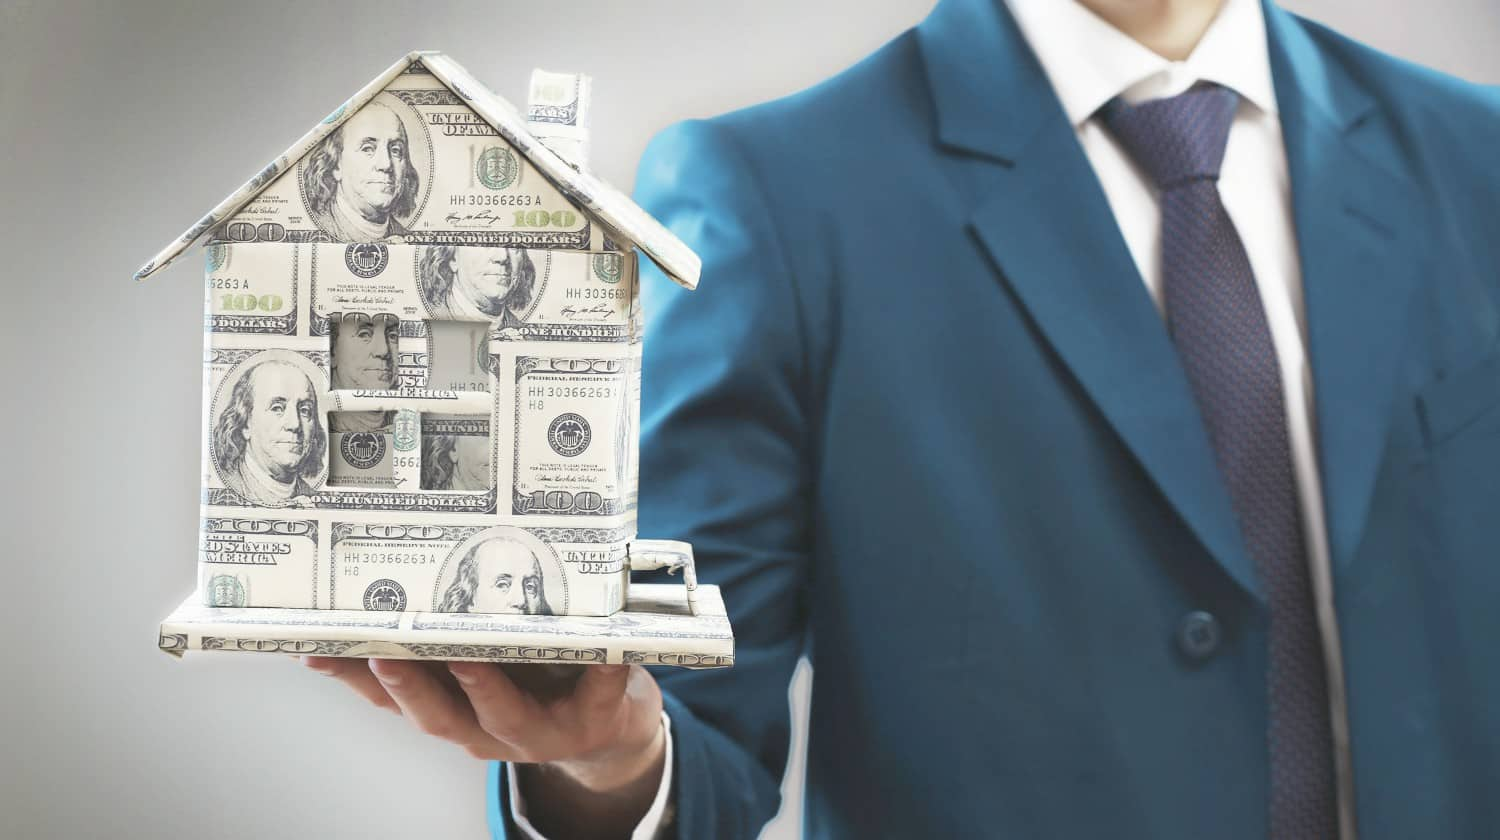 businessman holding a model house made of money   How To Start Investing In Real Estate Inside Your IRA   how to start investing in real estate   how to start investing in real estate   Featured